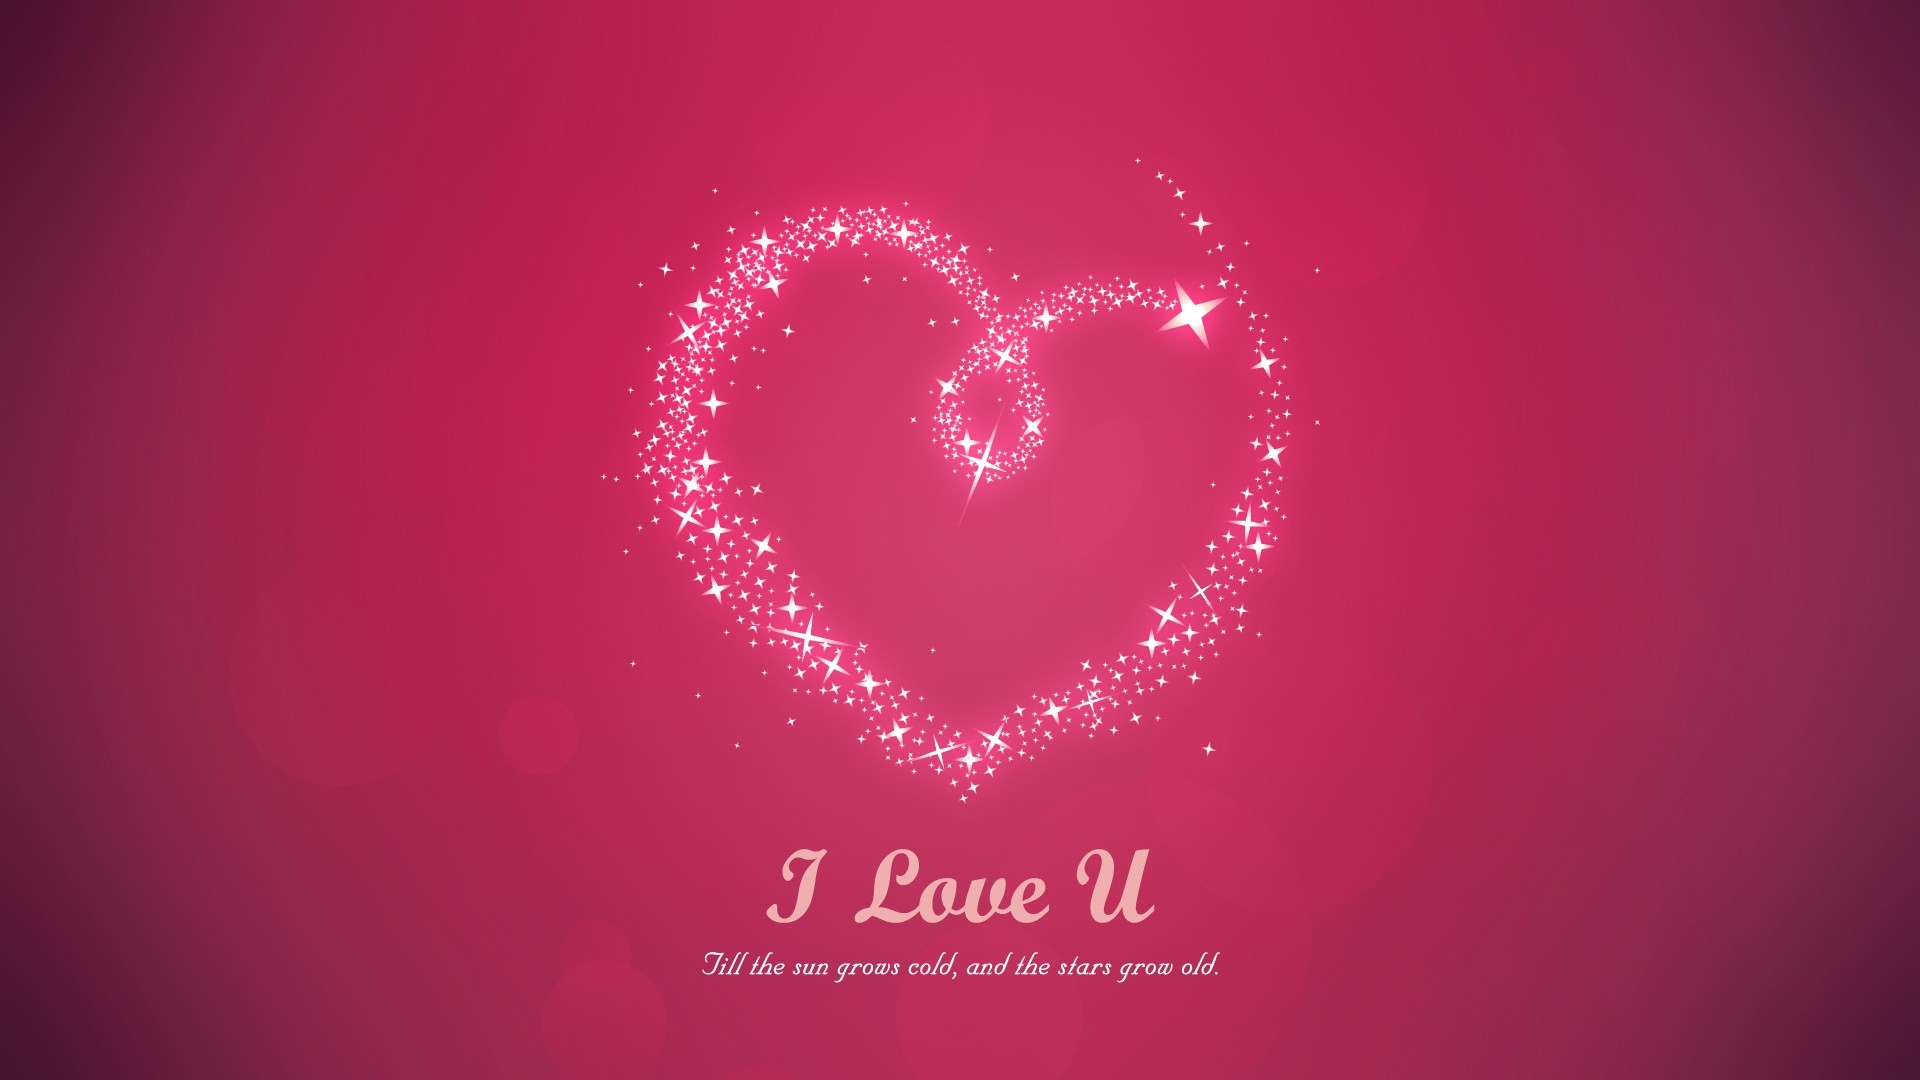 Wallpaper I Love You Hd : I love You Wallpapers Archives - HD Desktop Wallpapers 4k HD